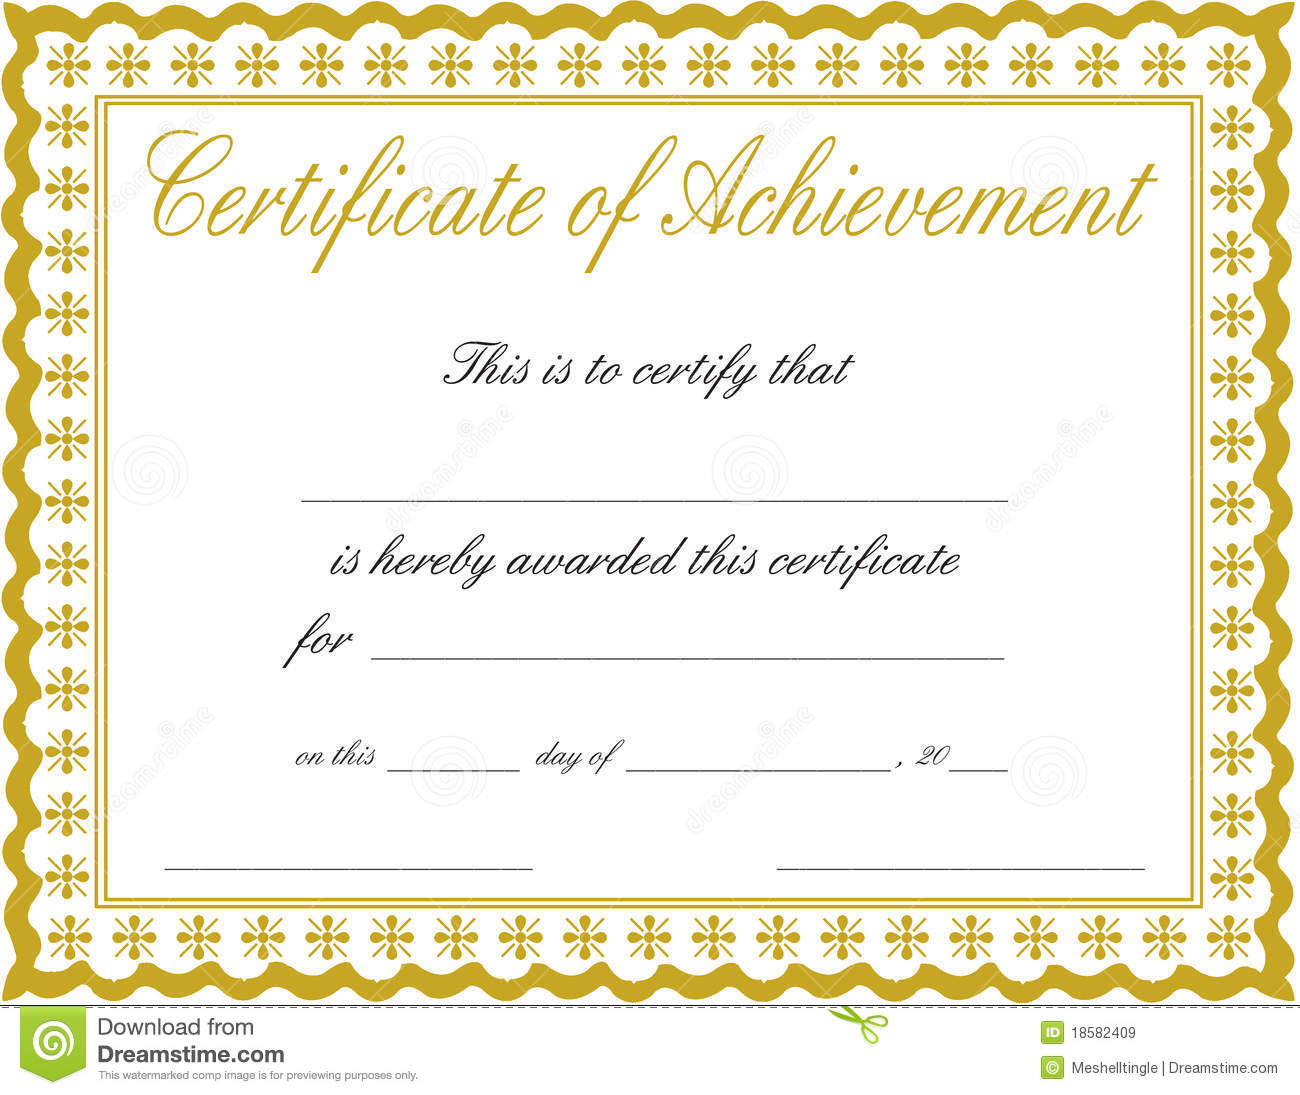 Achievement formal award certificate printable blank beautiful.